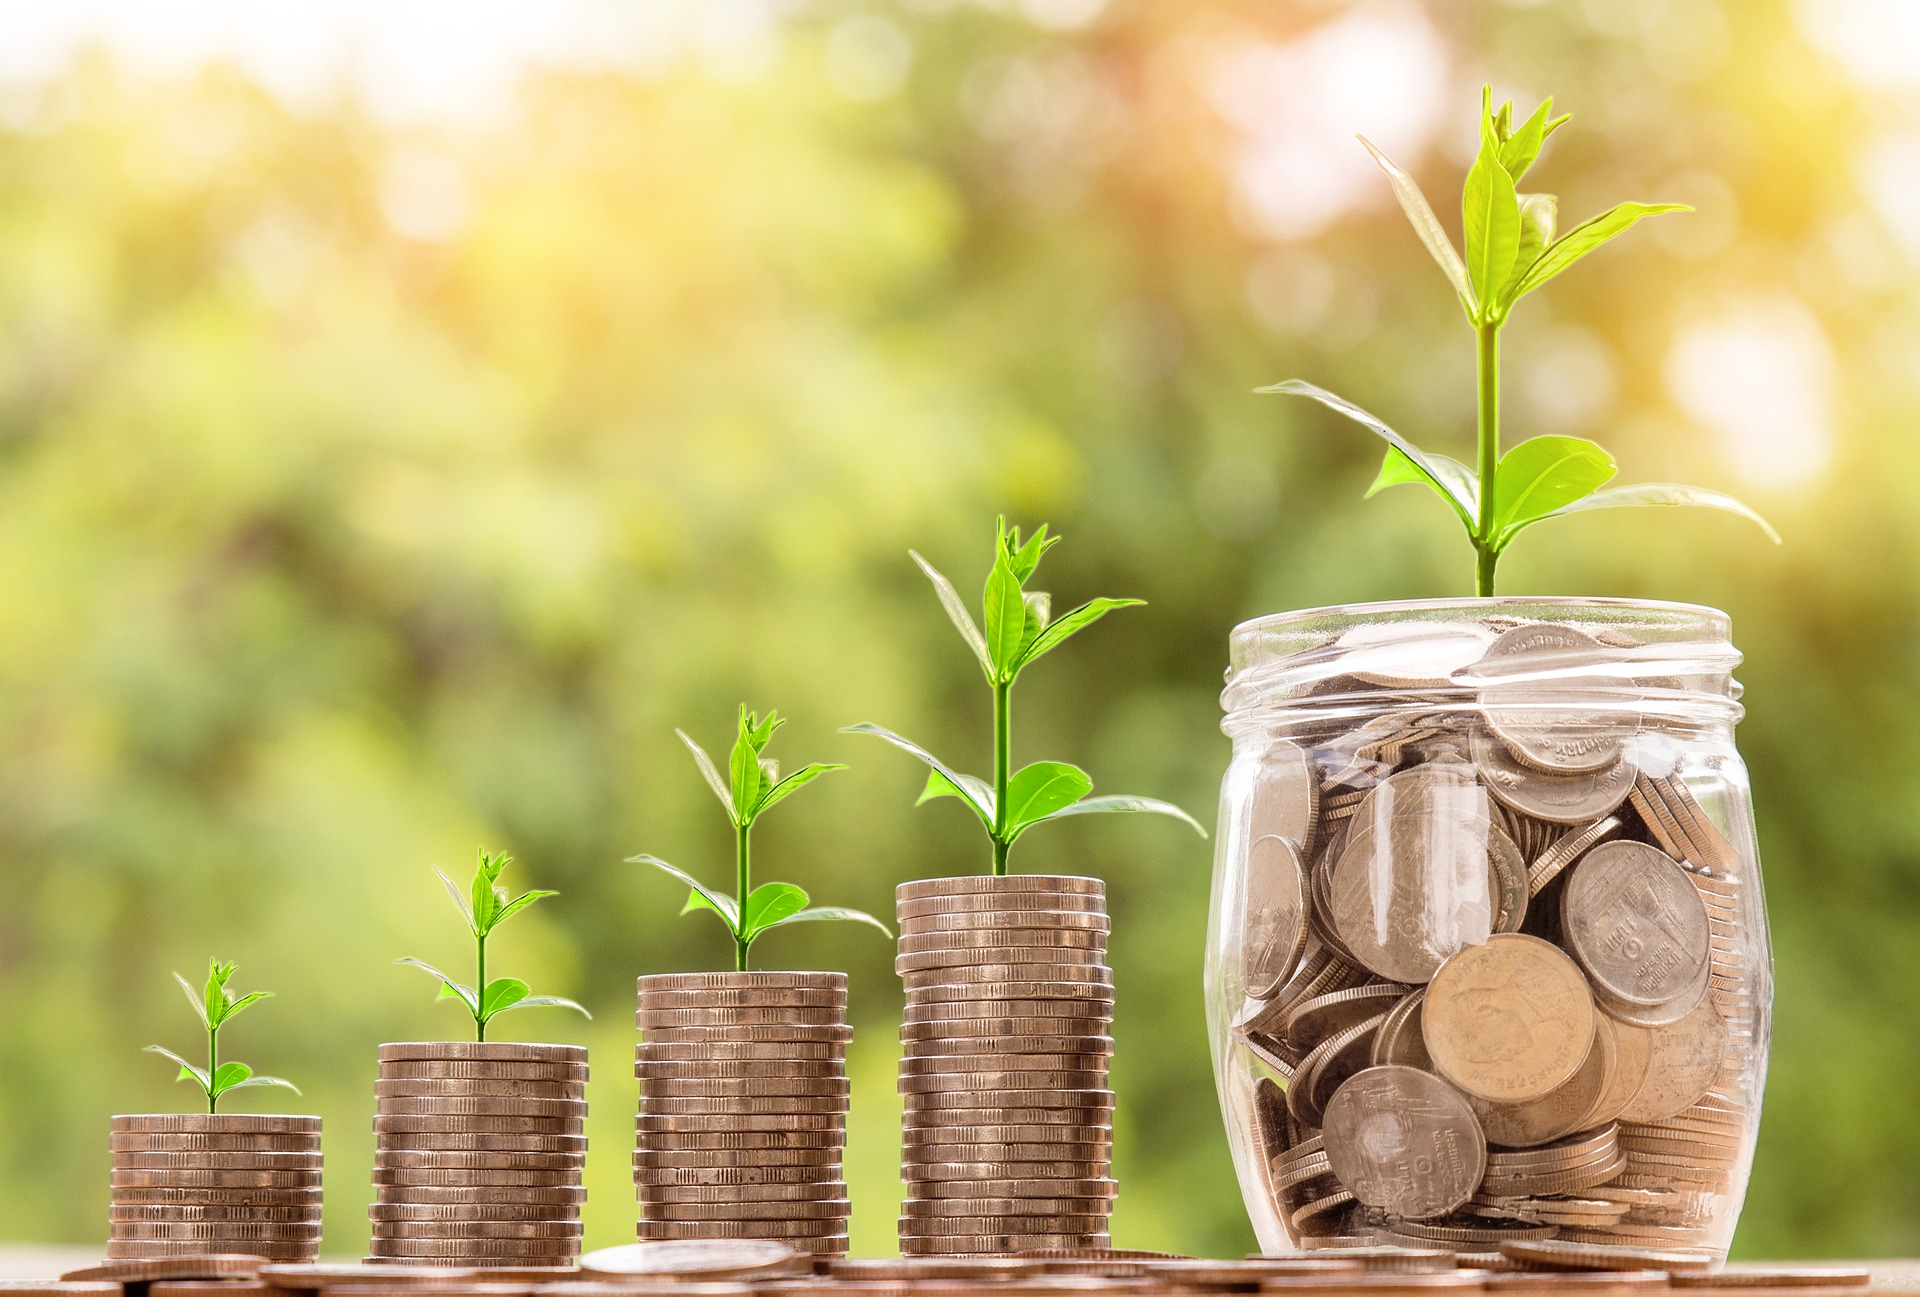 Top 10 Best Dividend Paying Stocks in India in 2019